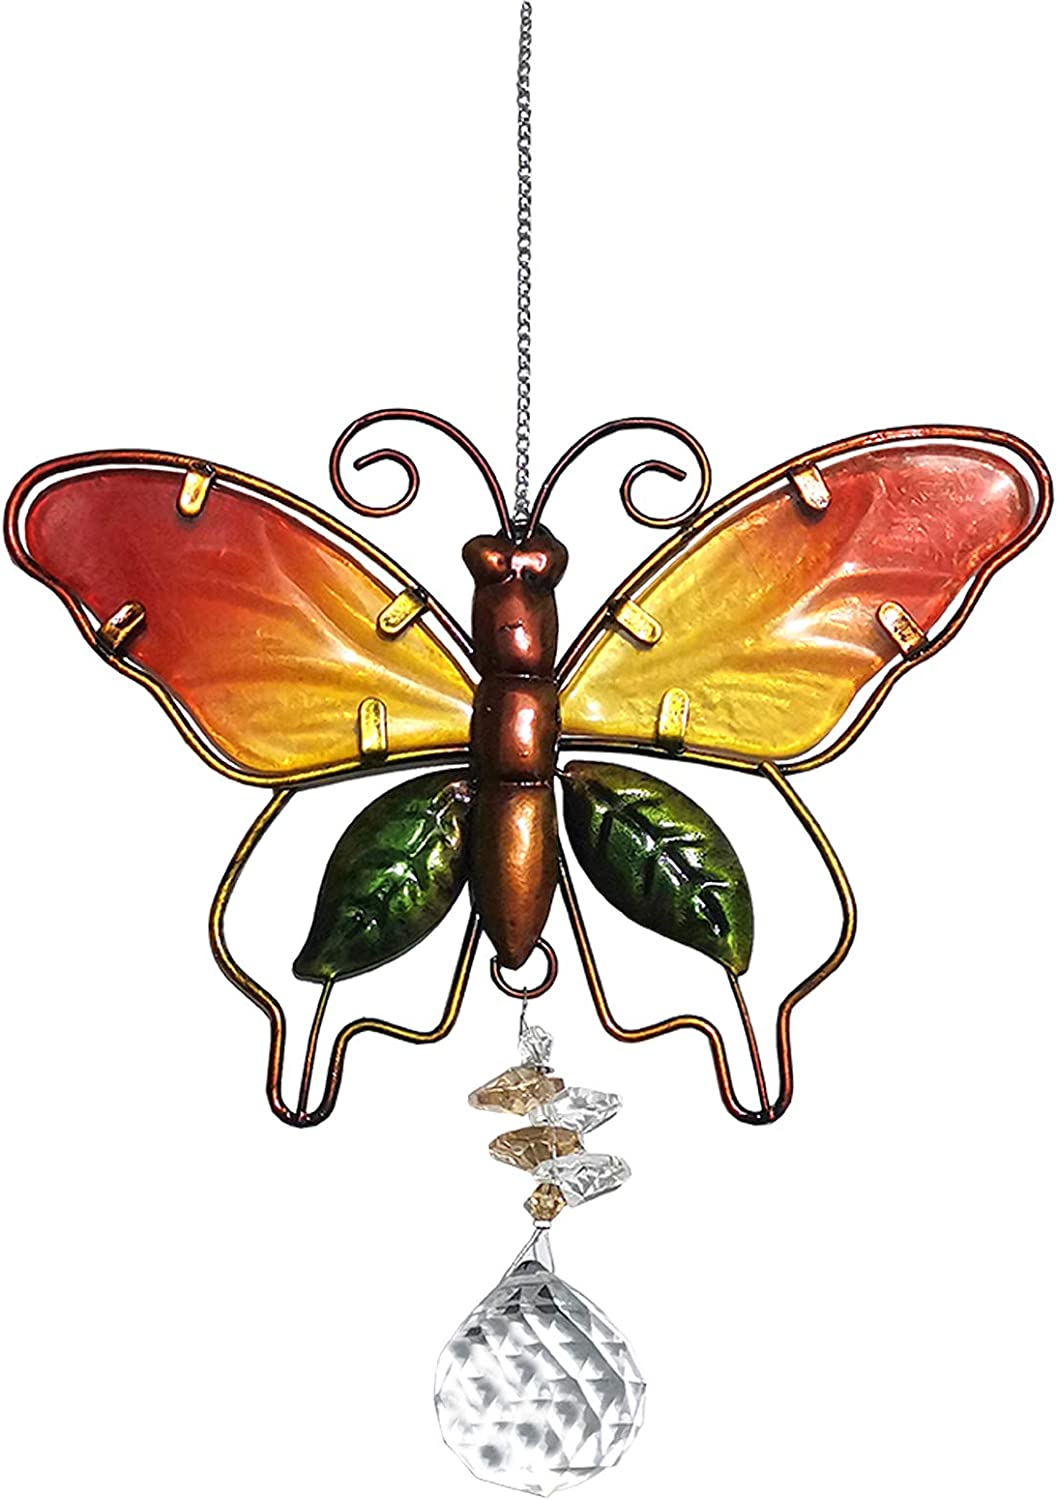 Garden Sun Raleigh Mall Catchers with Crystals Butte for Ranking TOP2 Glass Window Stained